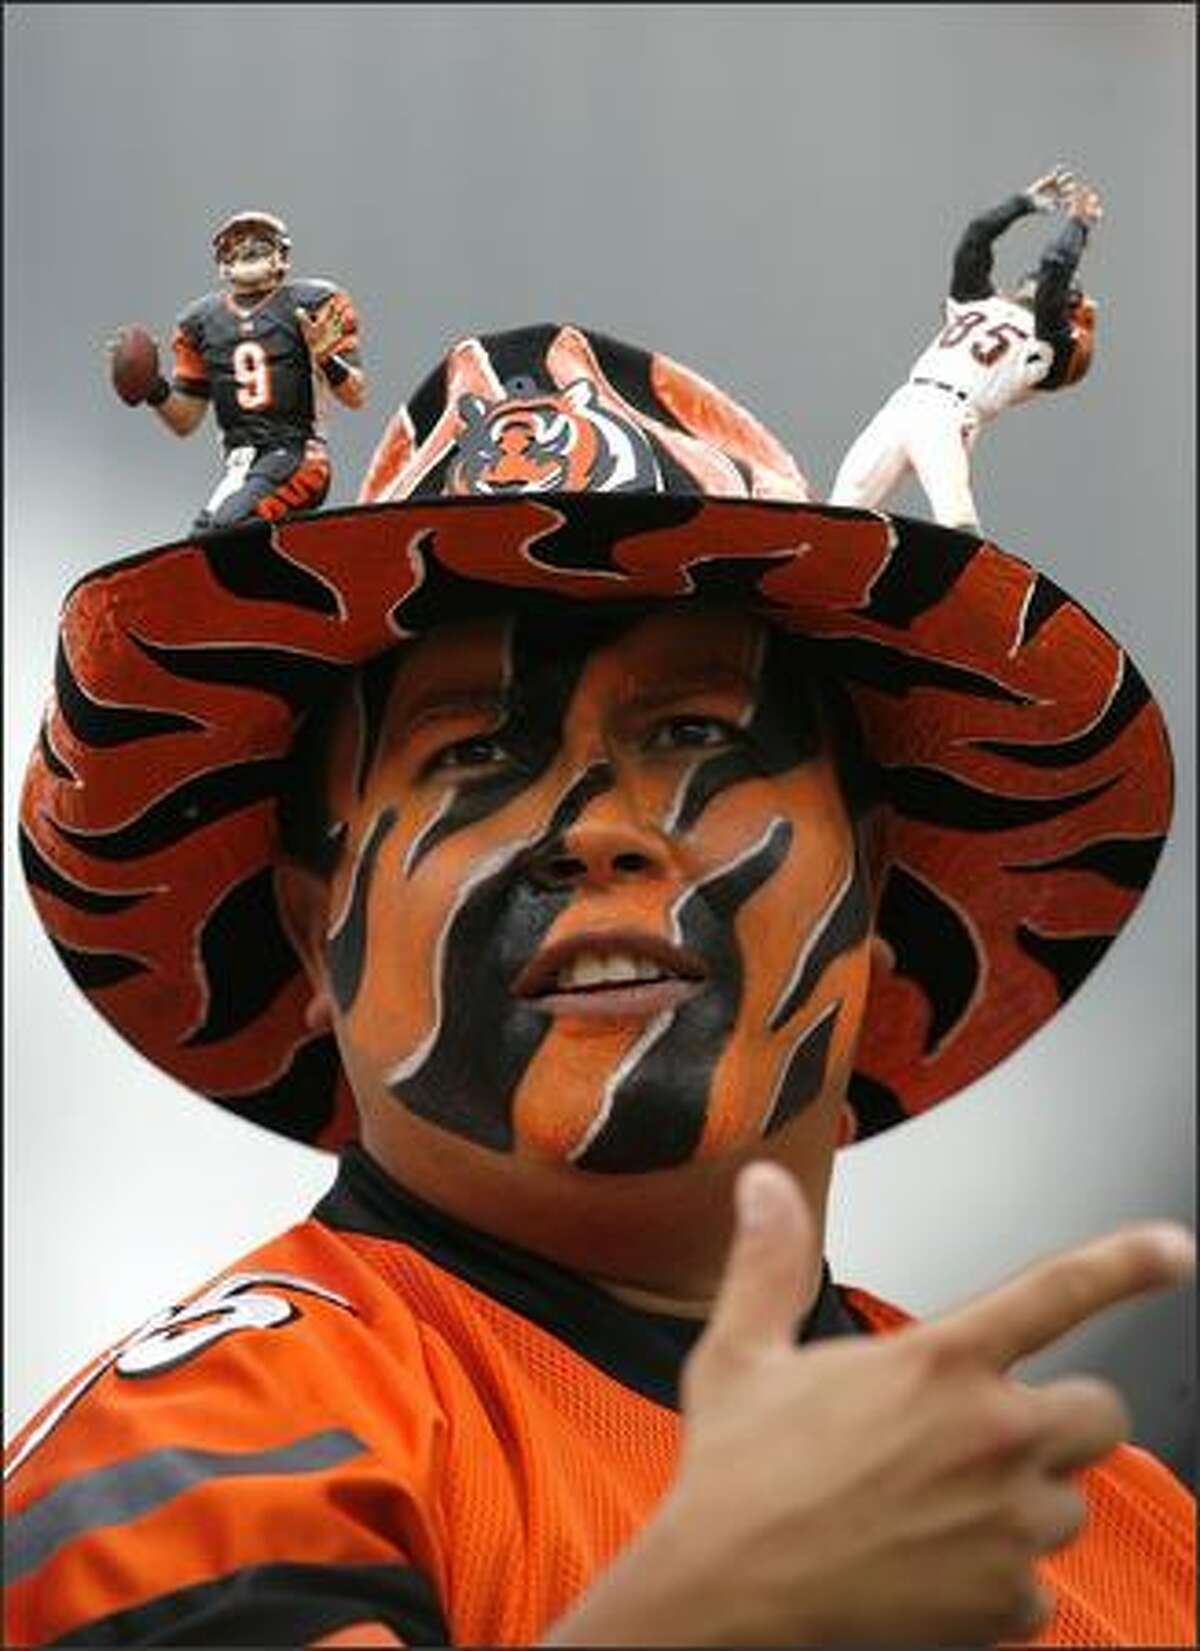 A Cincinnati Bengals fan watches a game against the Tennessee Titans during the second quarter of their NFL game Sept. 14.